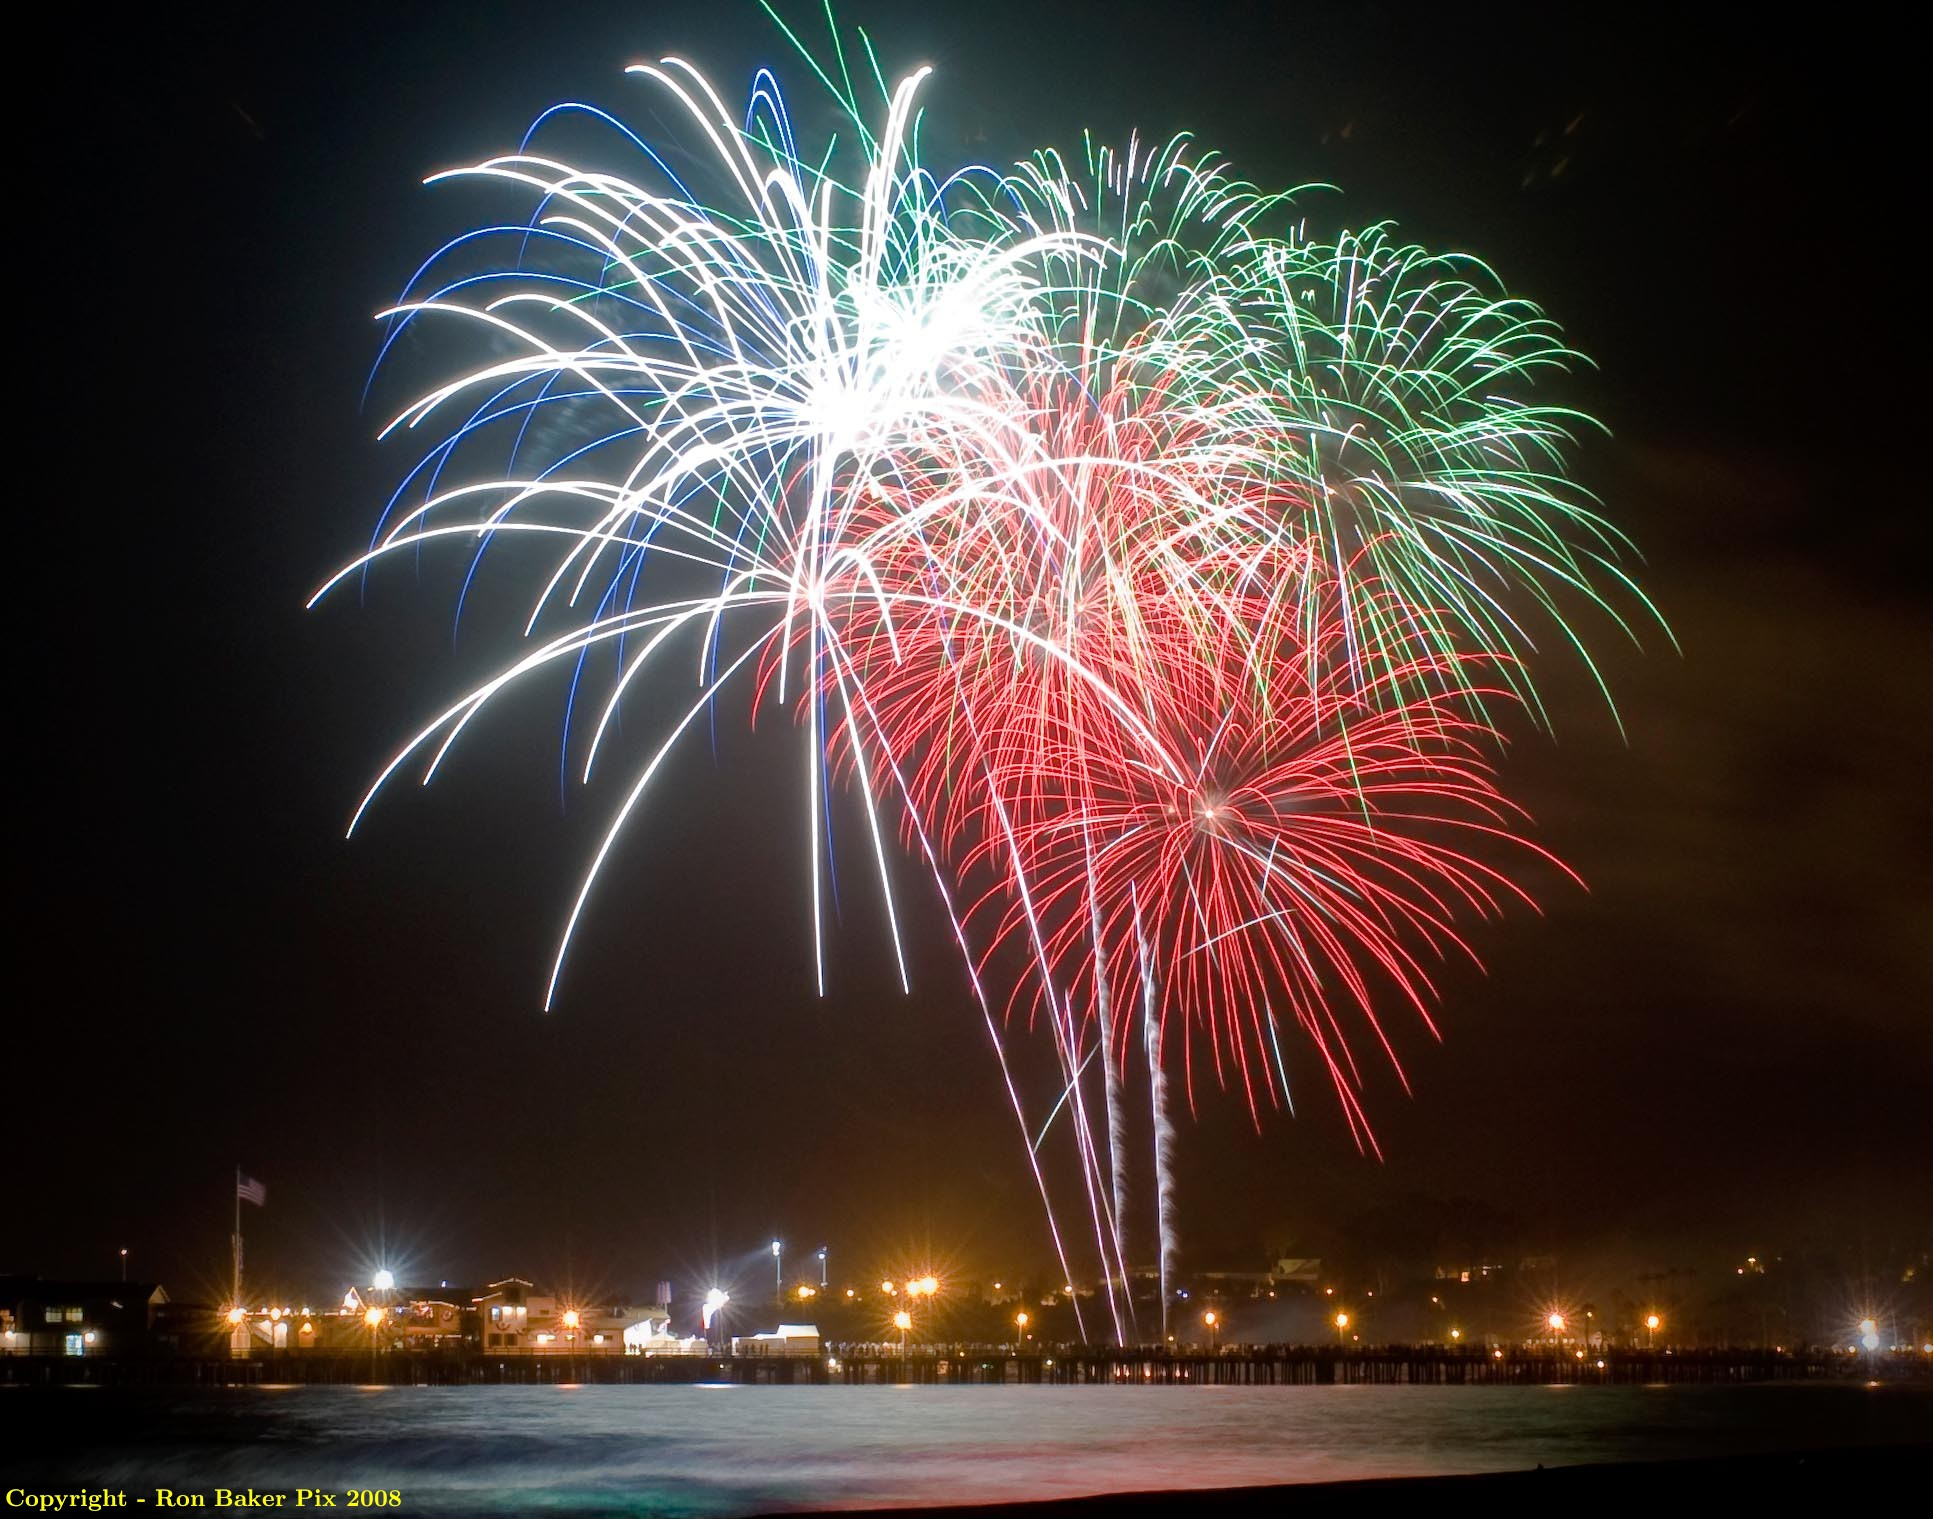 Santa Barbara's 4th of July Fireworks